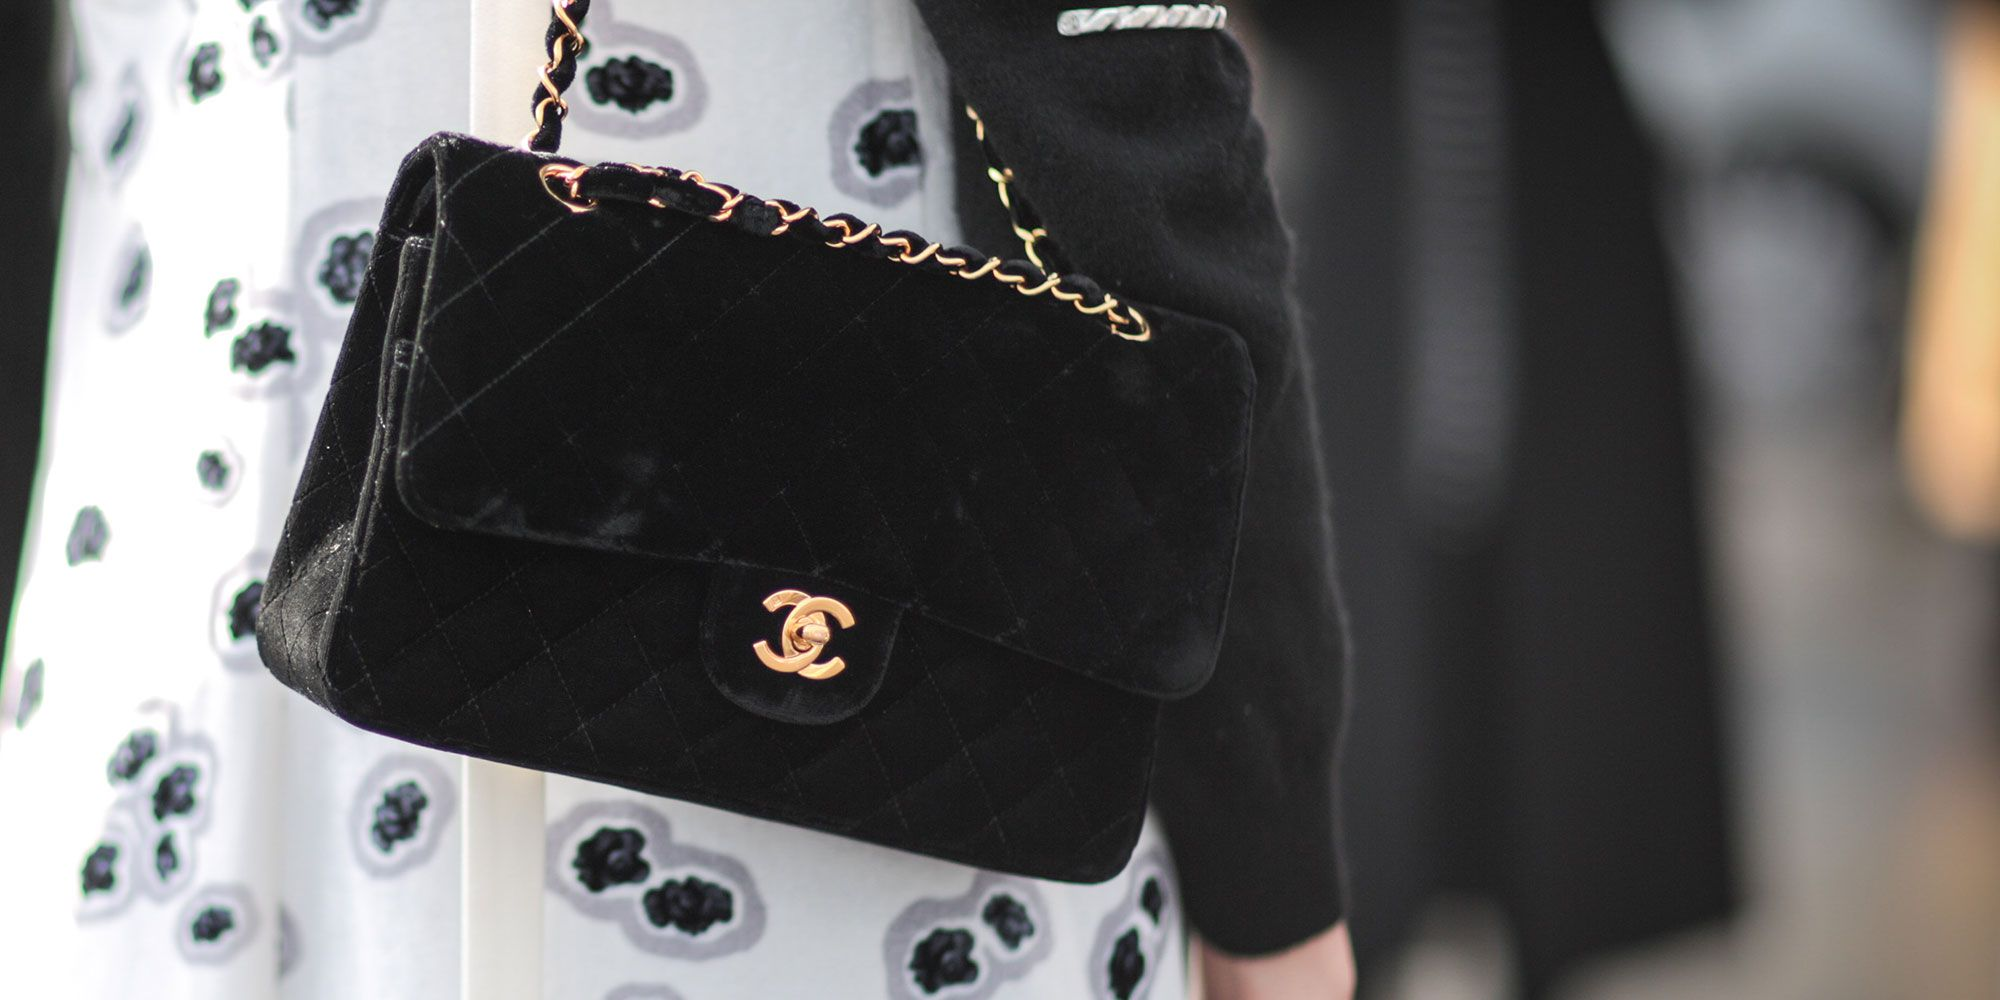 The Best Investment Bags To Buy - Chanel, Prada, Dior, Fendi, Hermes, Celine 4e3b04ca69